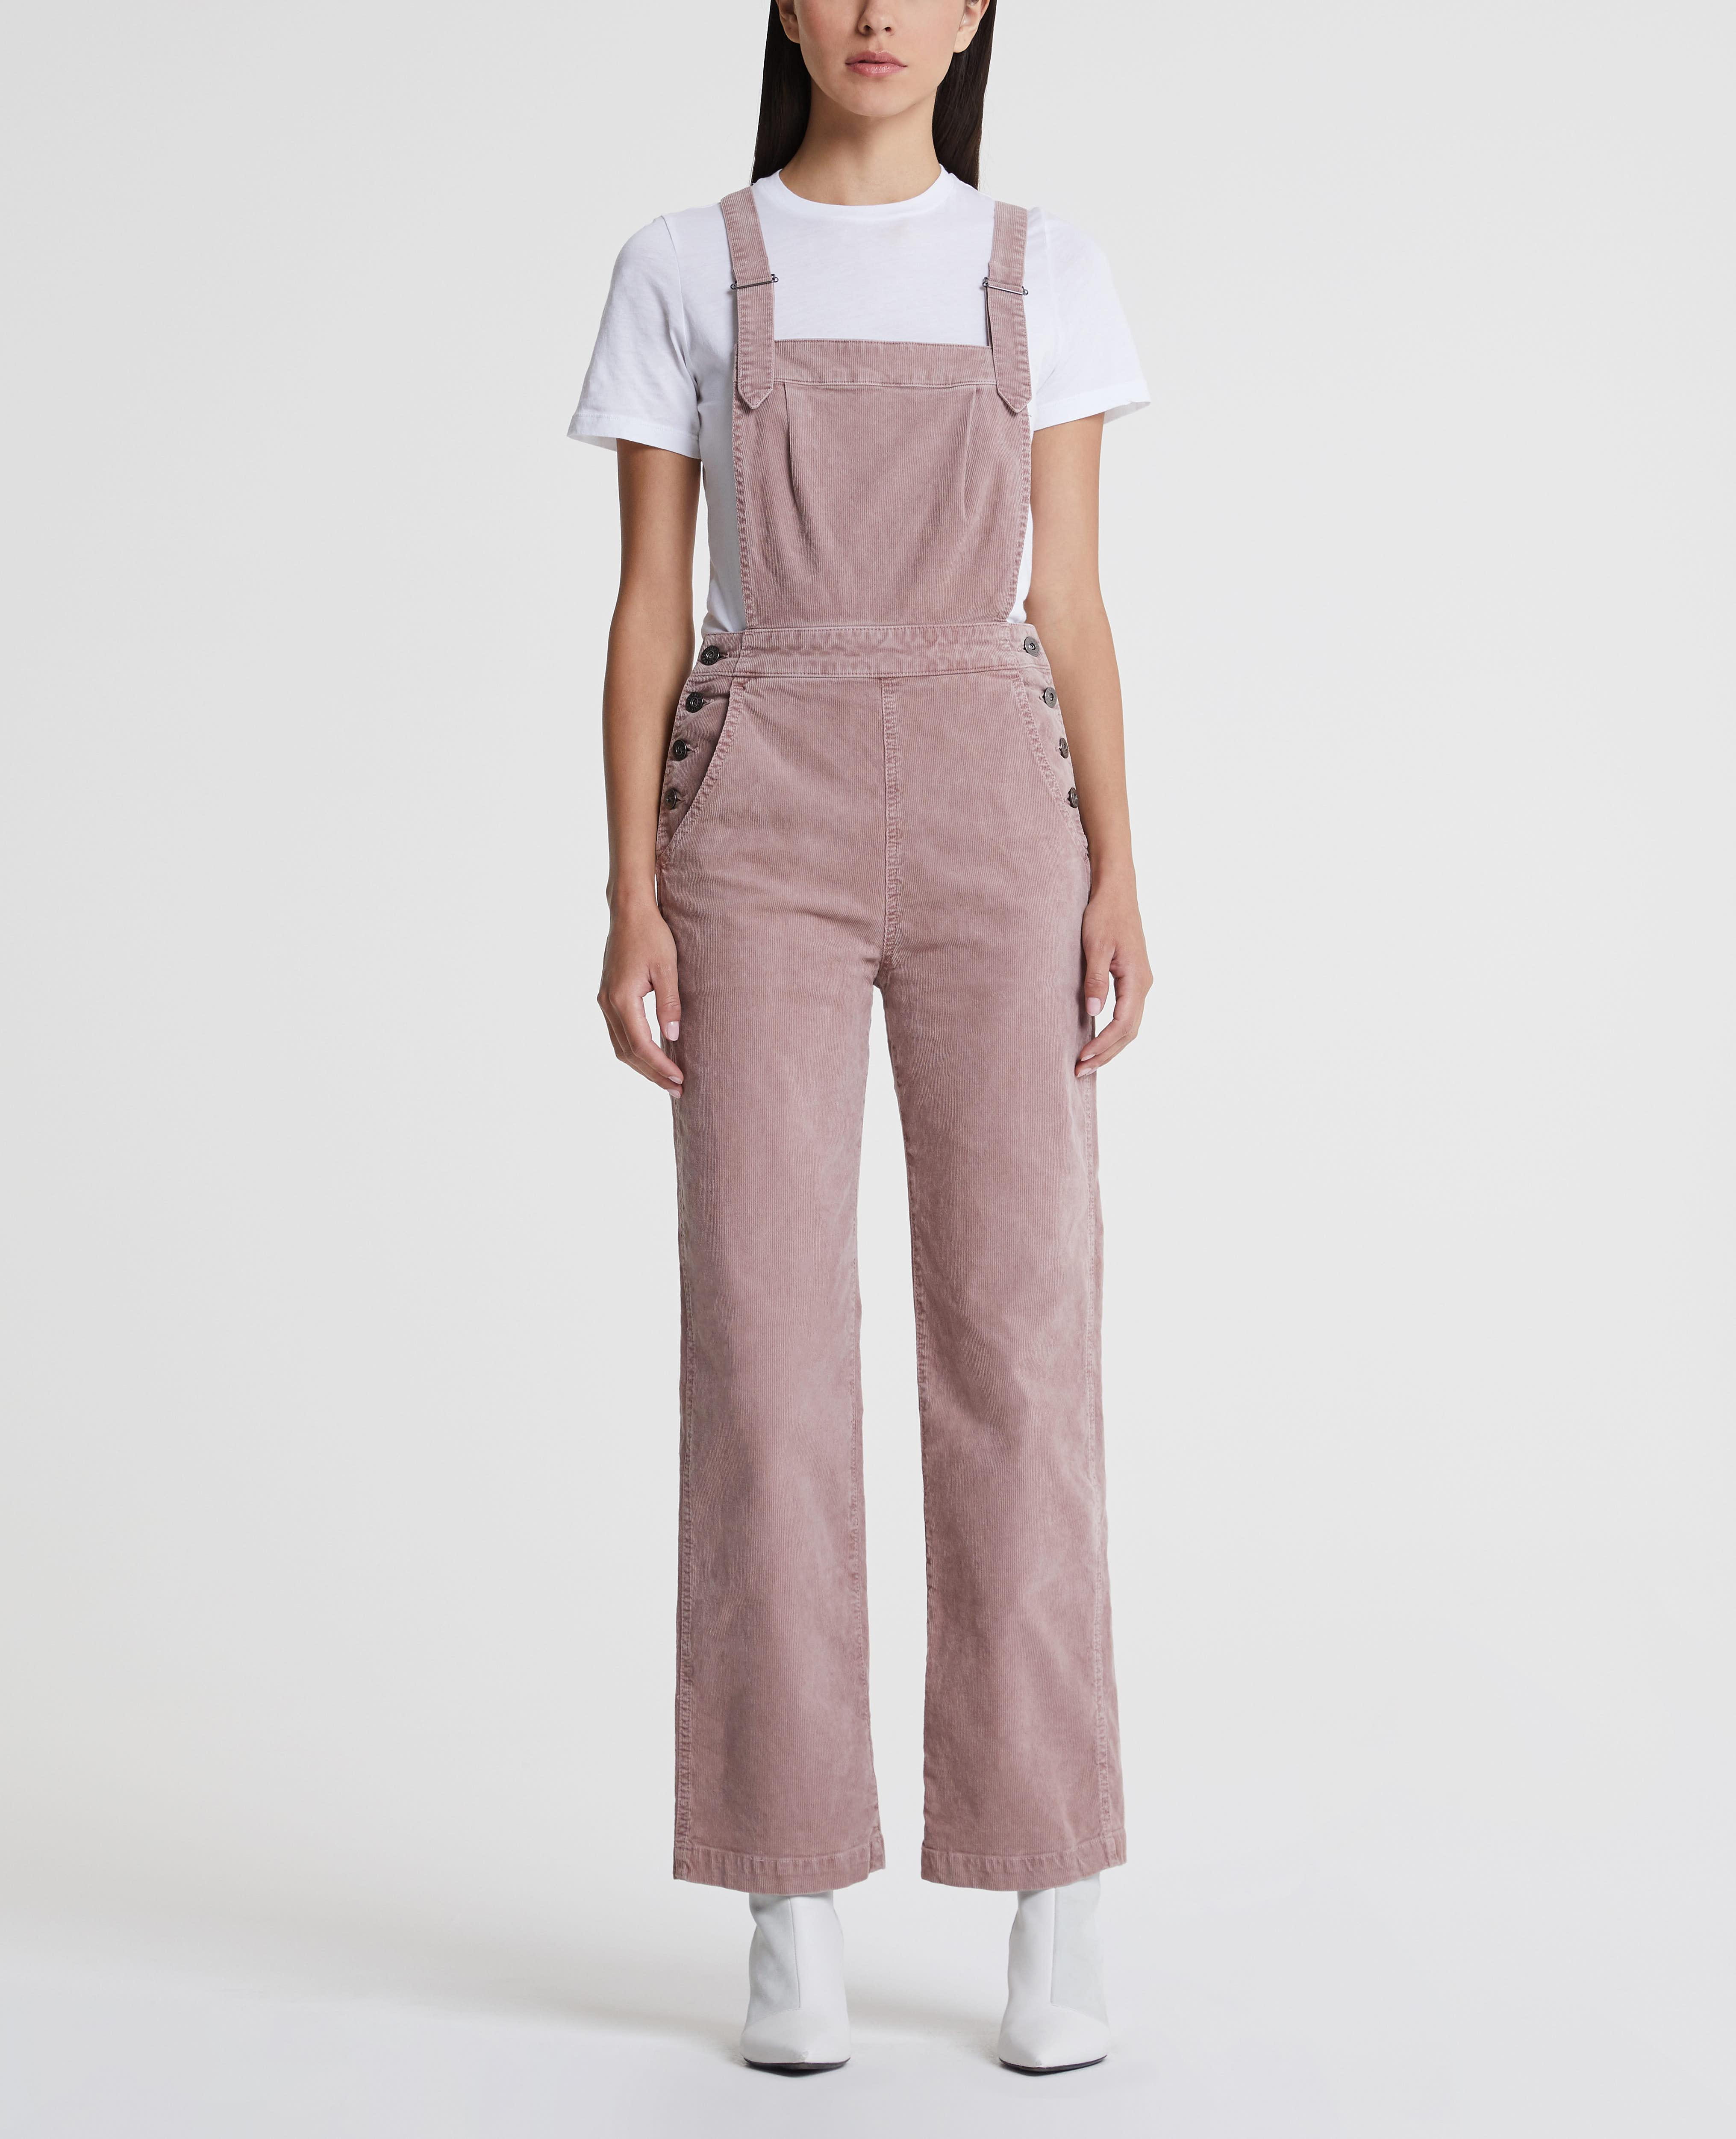 b8d7fa29c8b The Gwendolyn Overall in Sulfur Pale Wisteria AG Jeans Official Store